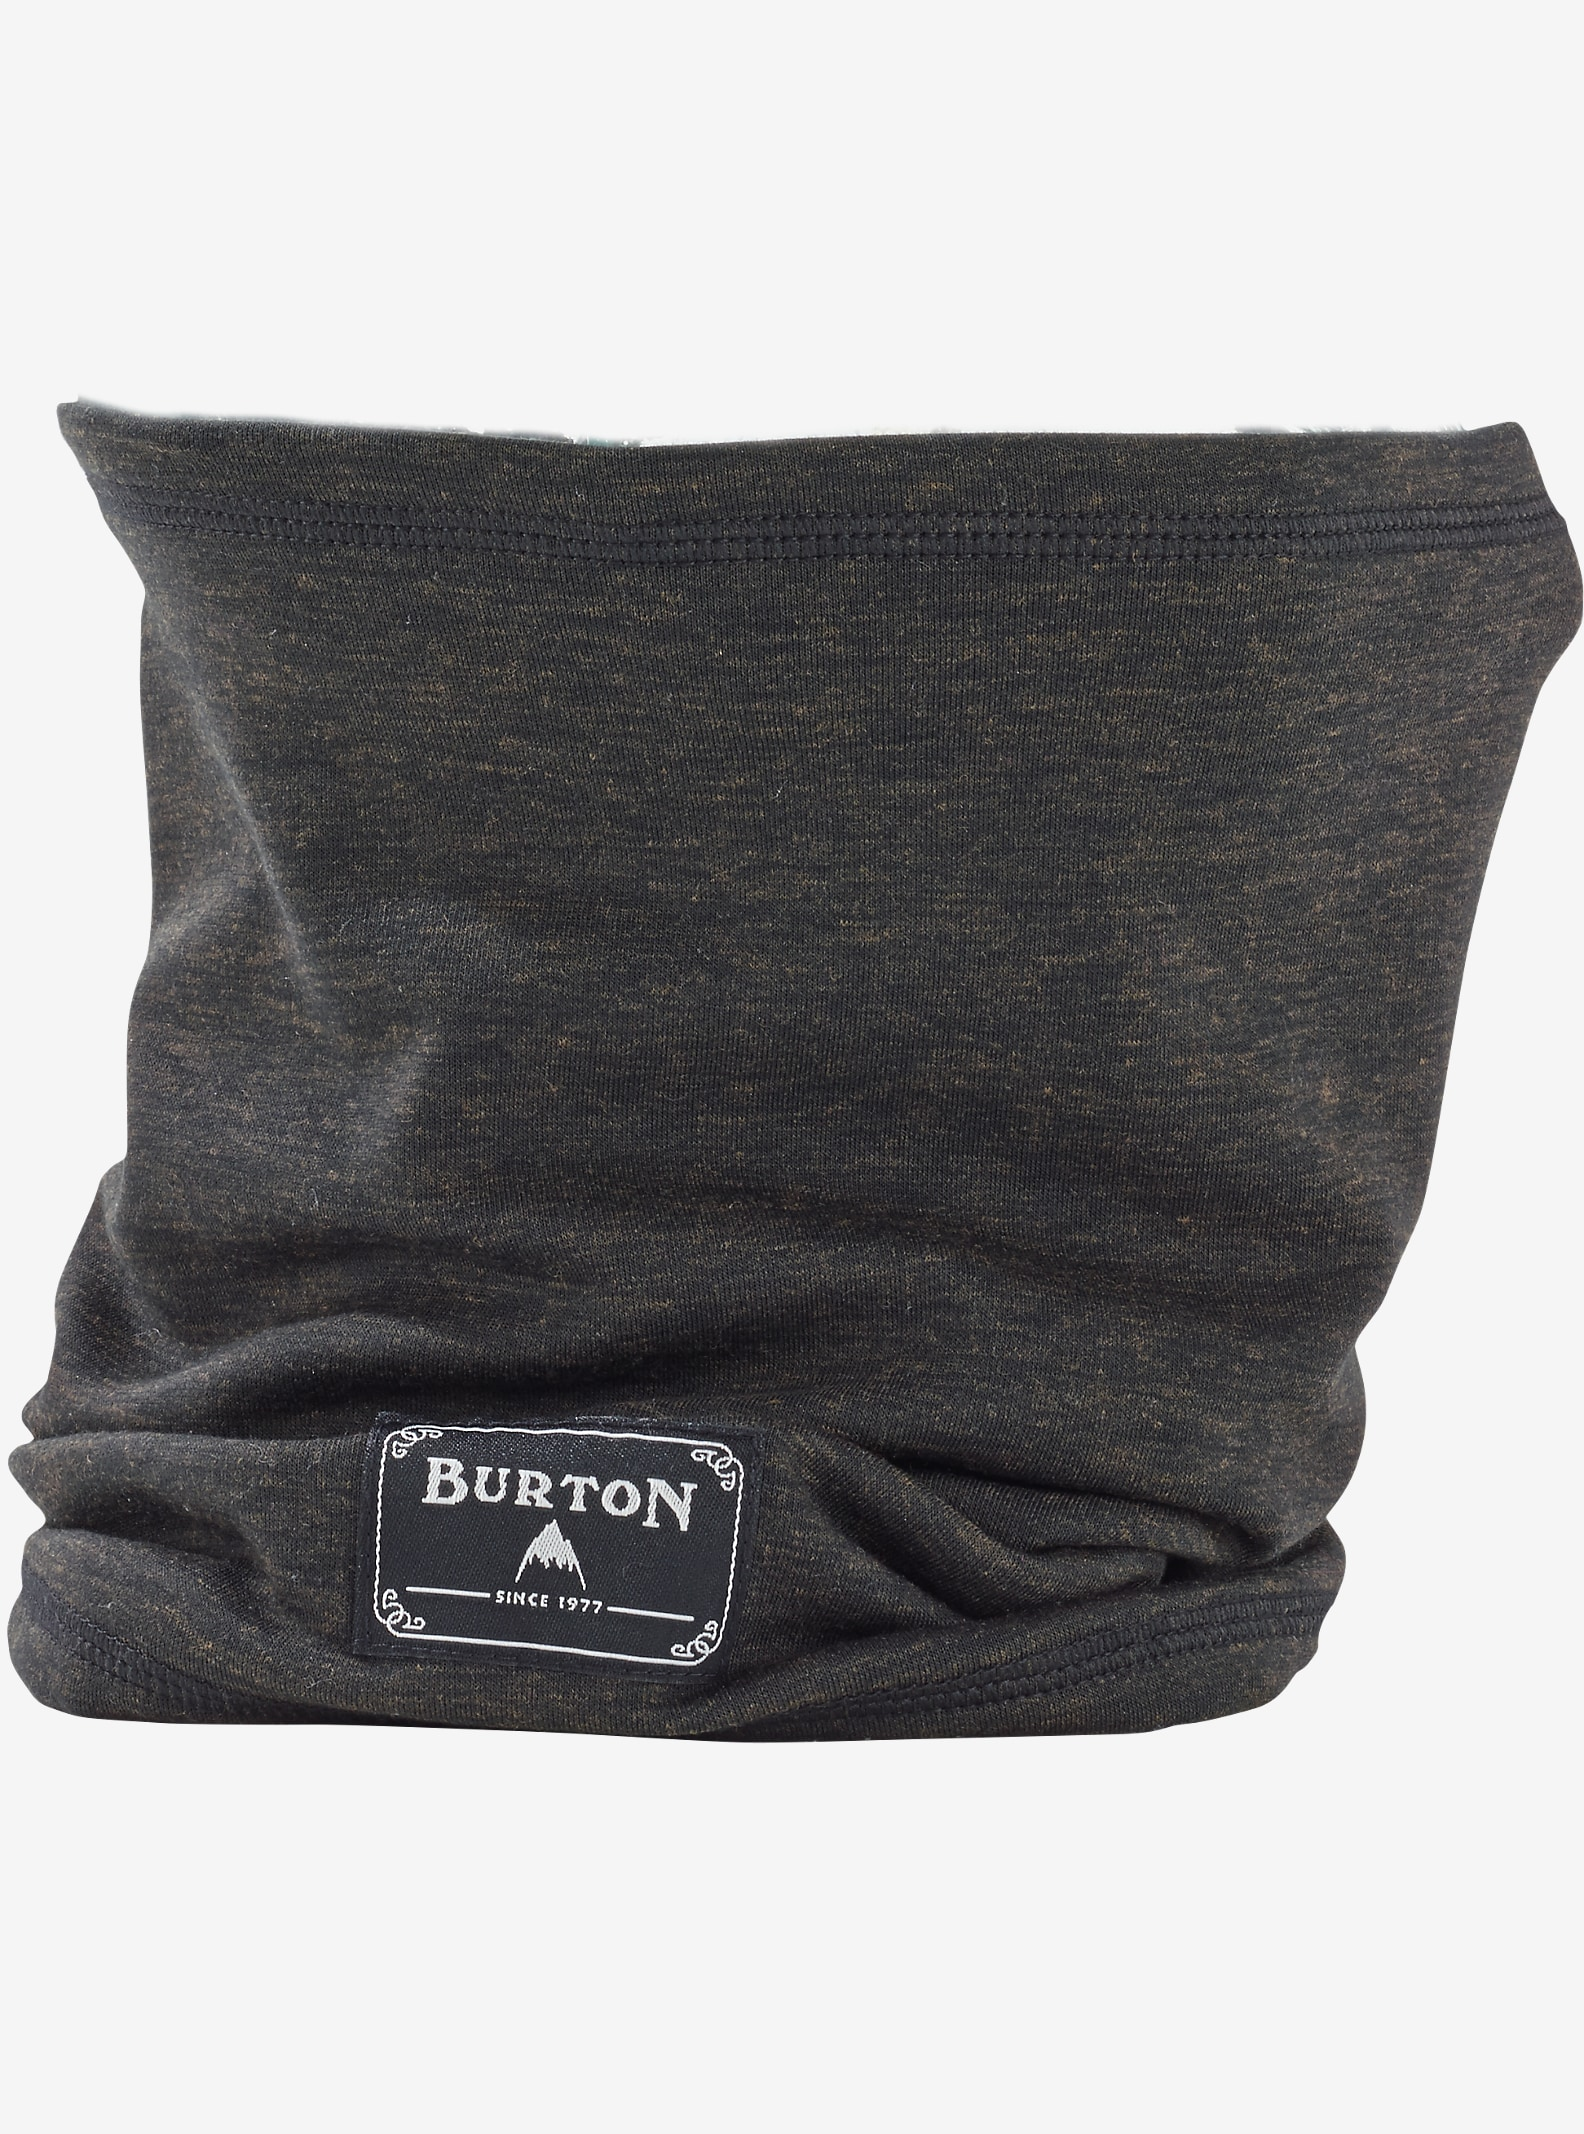 Burton drirelease® Wool Neck Warmer shown in True Black Heather